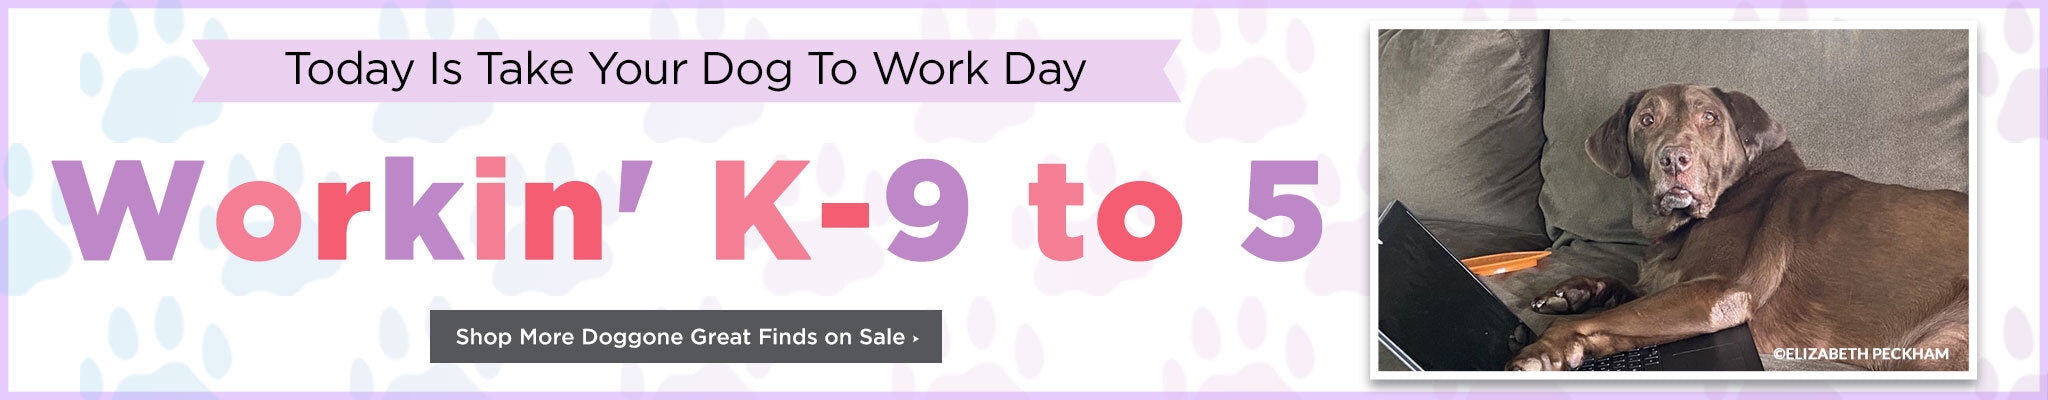 Today is Take Your Dog to Work Day | Workin' K-9 to 5 | Shop More Doggone Great Finds on Sale